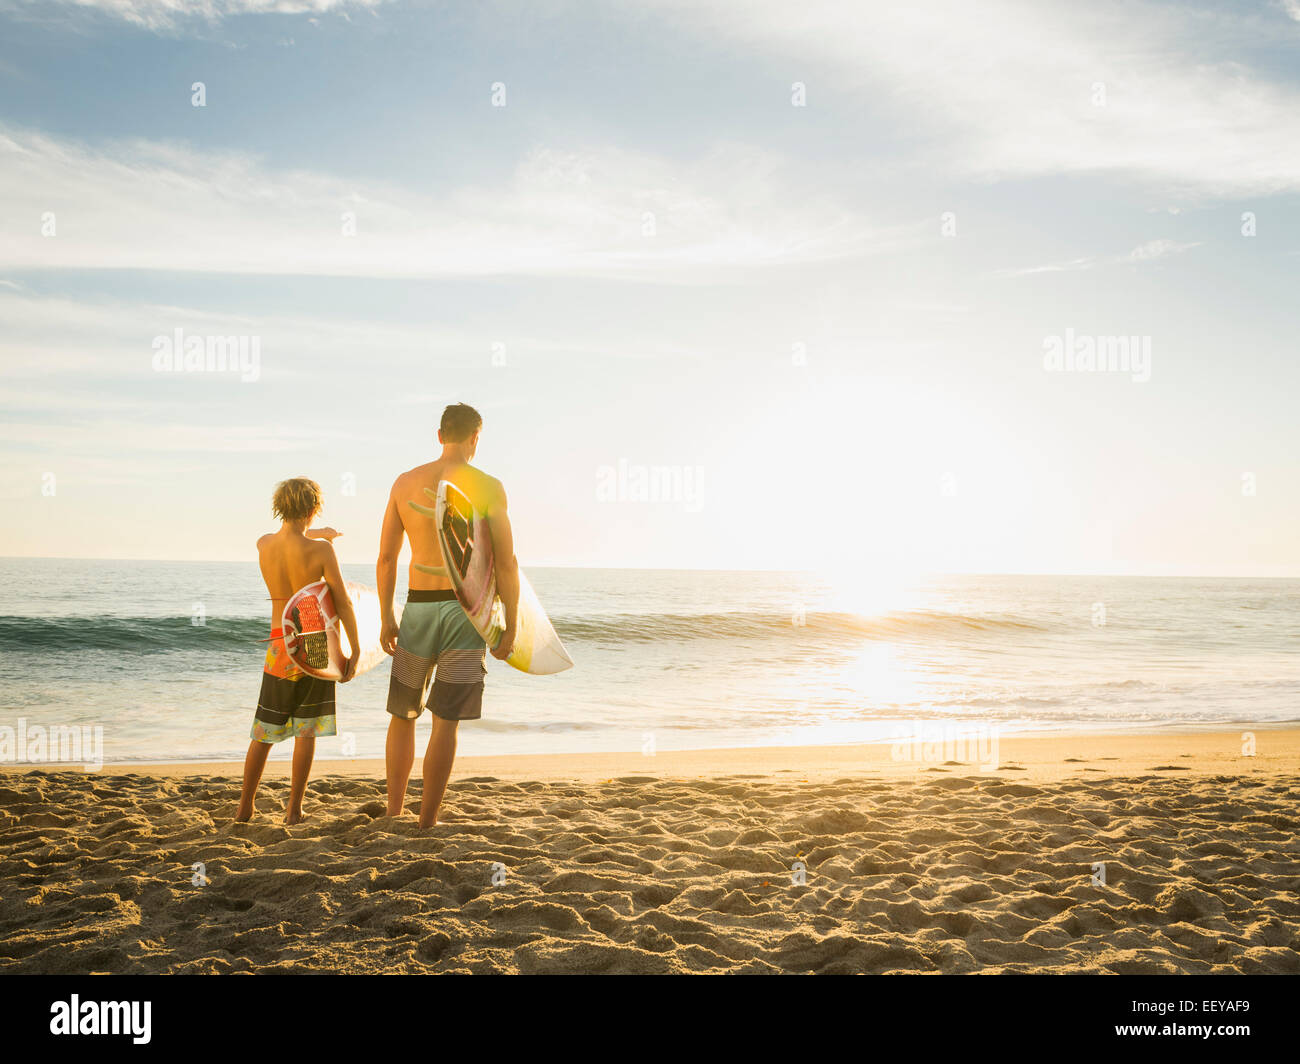 USA, California, Laguna Beach, Father and son (14-15) looking at sea - Stock Image